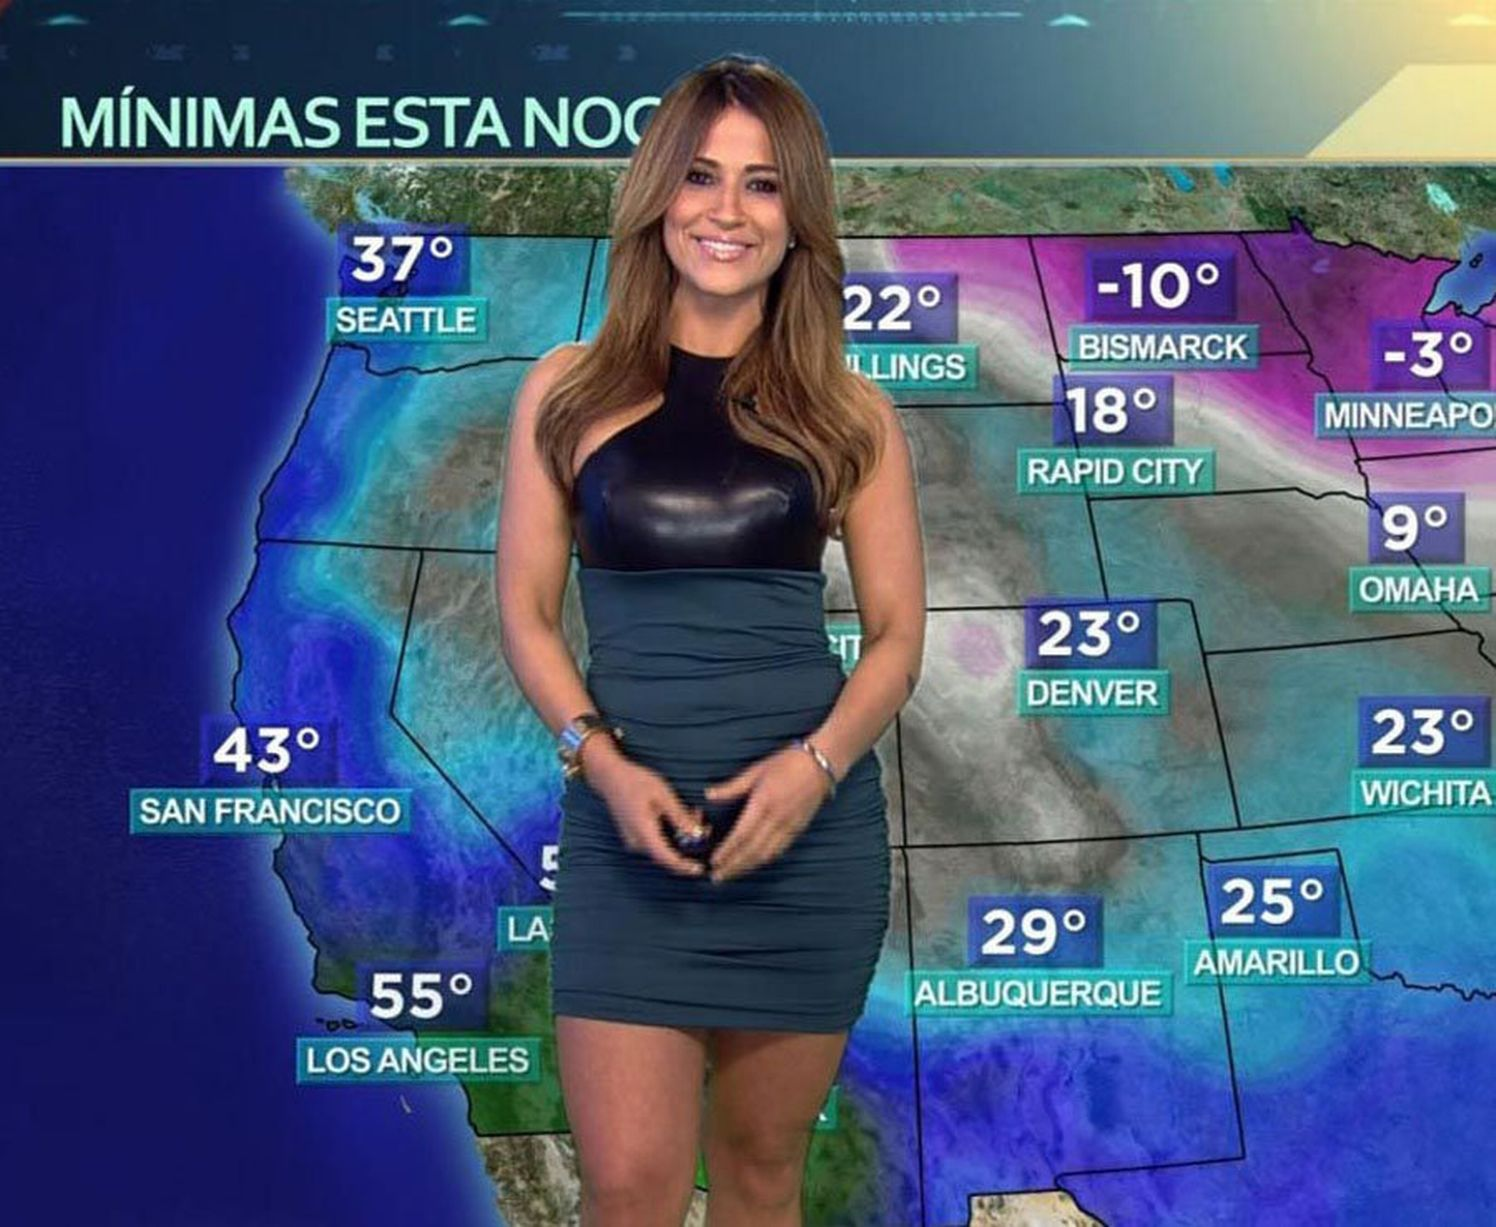 Jackie Guerrido who presents the weather for Despierta America